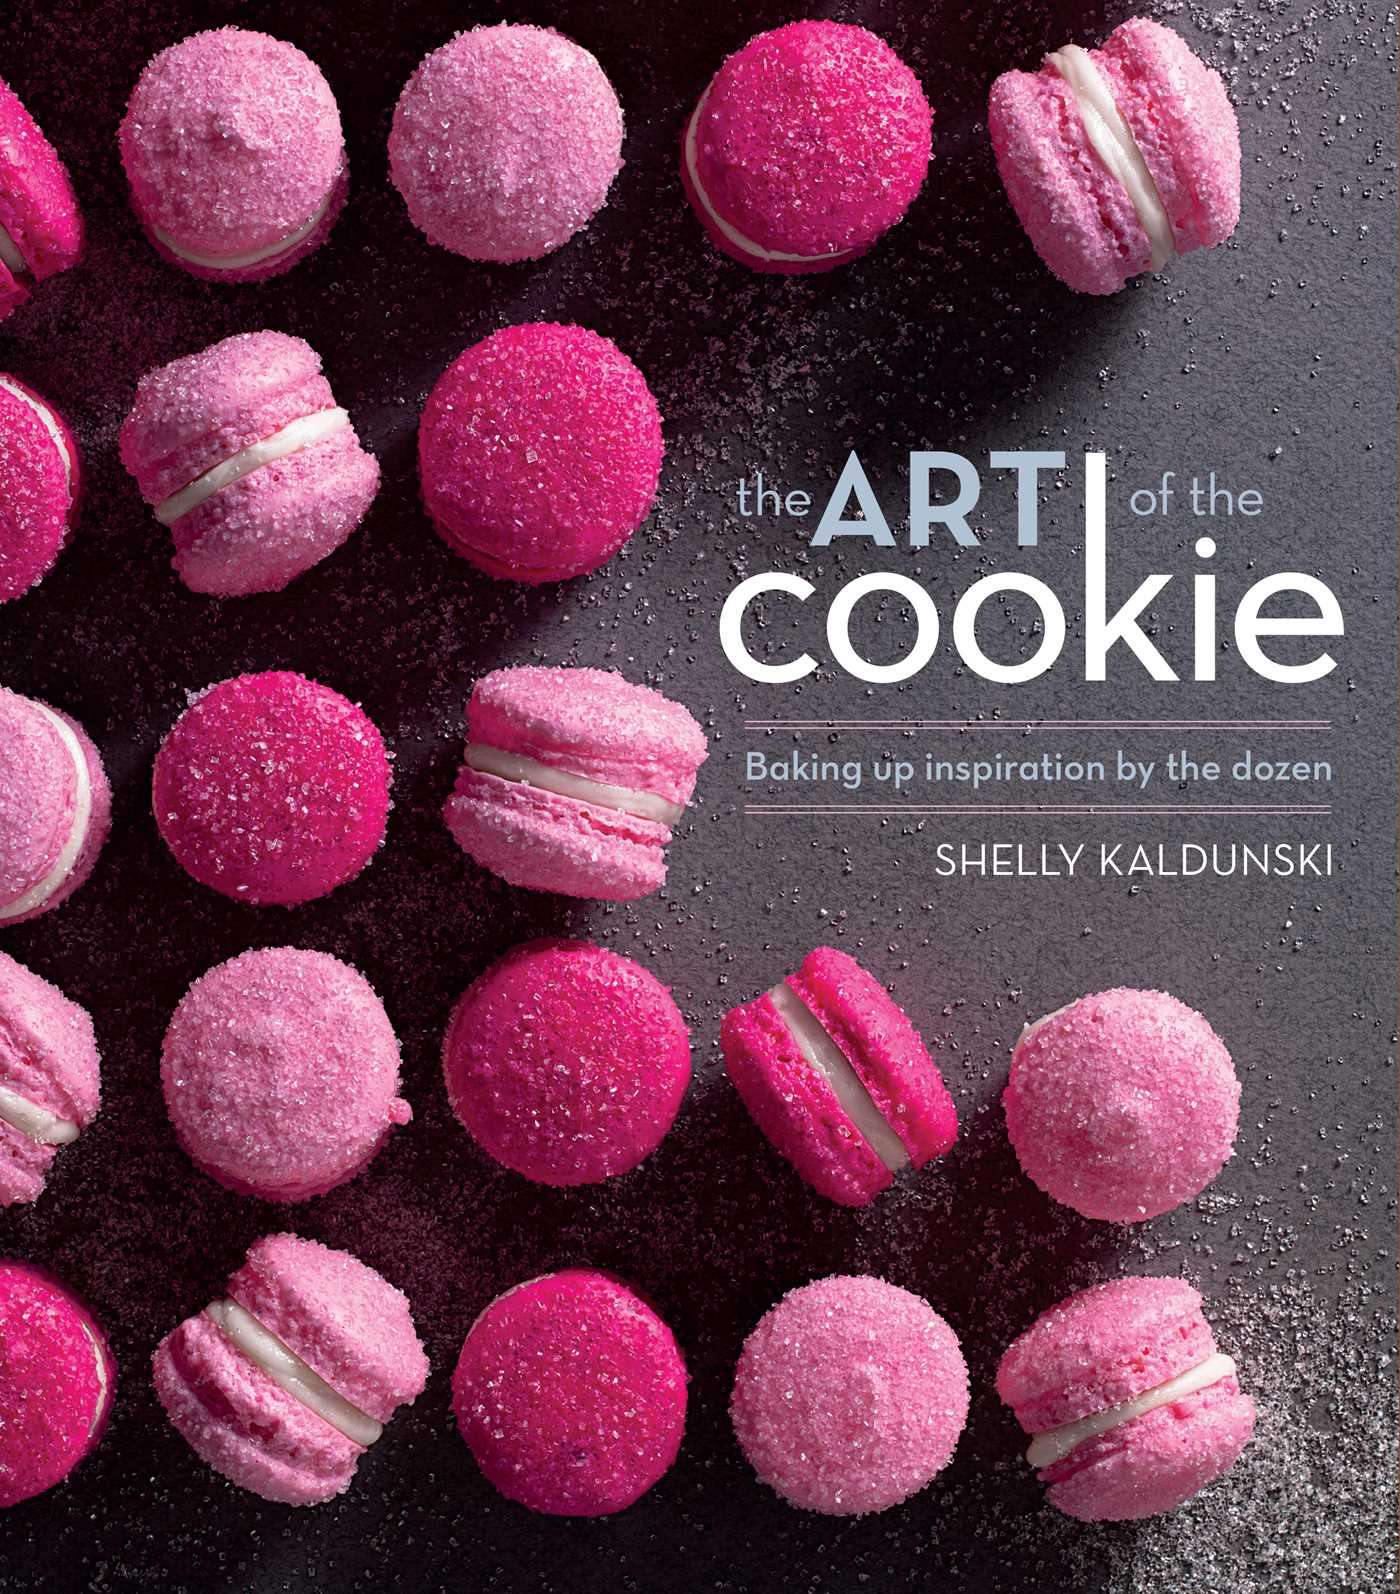 The-art-of-the-cookie-9781616289744_hr